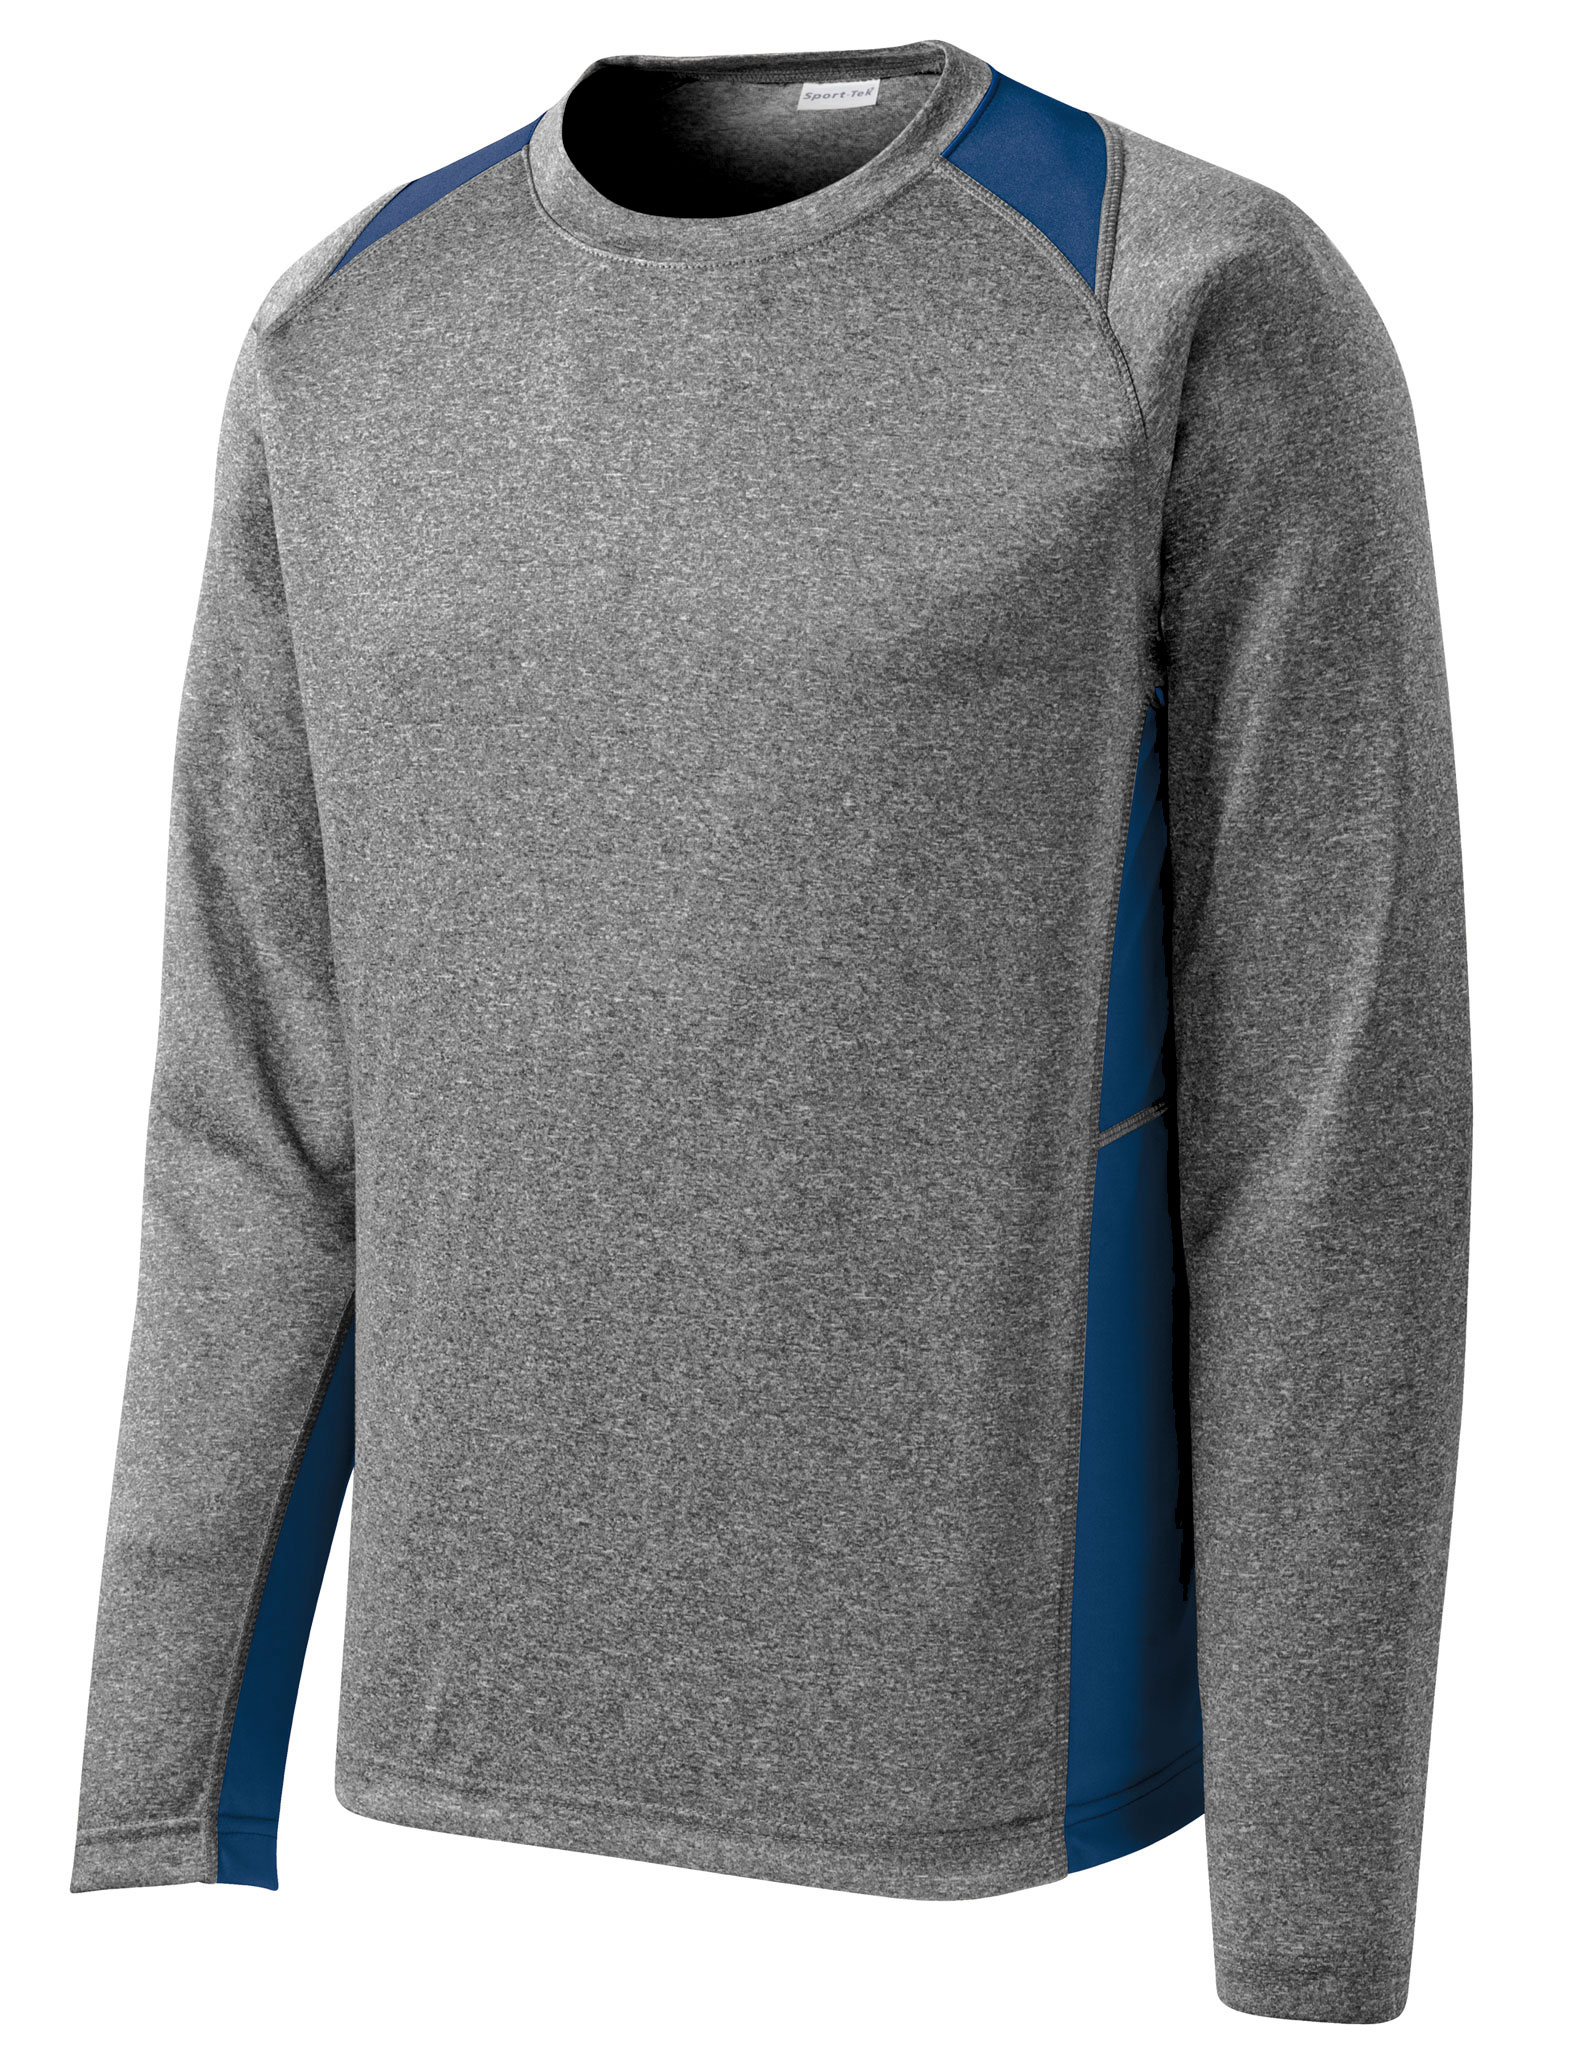 Adult Long Sleeve Heather Colorblock Contender™ Tee